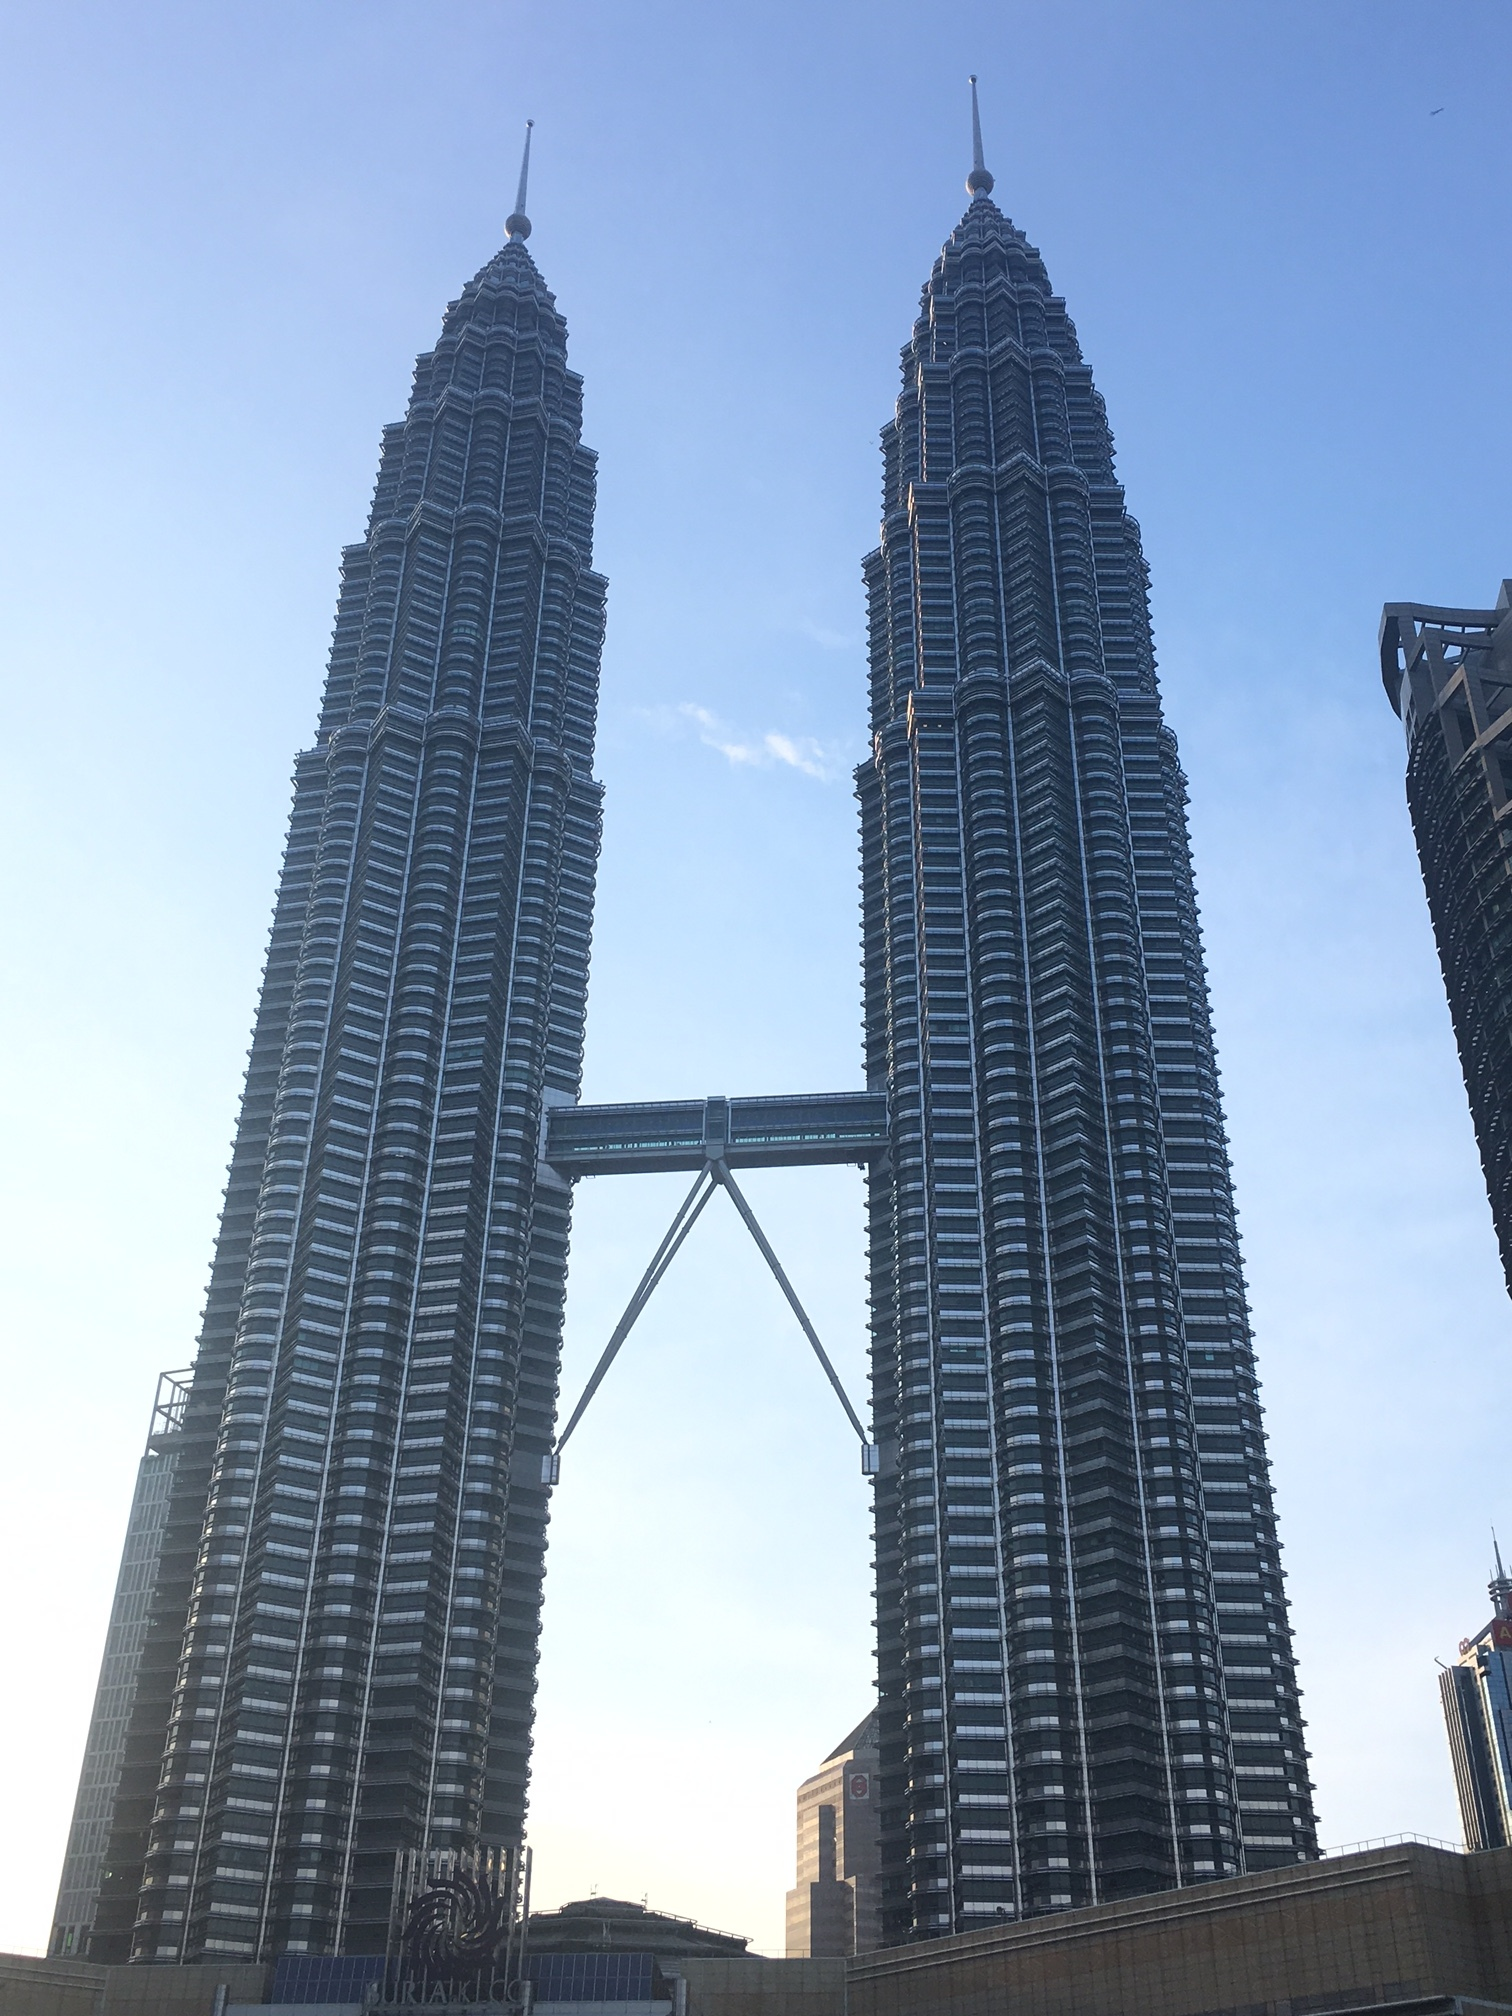 The iconic Petrona Twin Towers, tallest twin towers in the world.